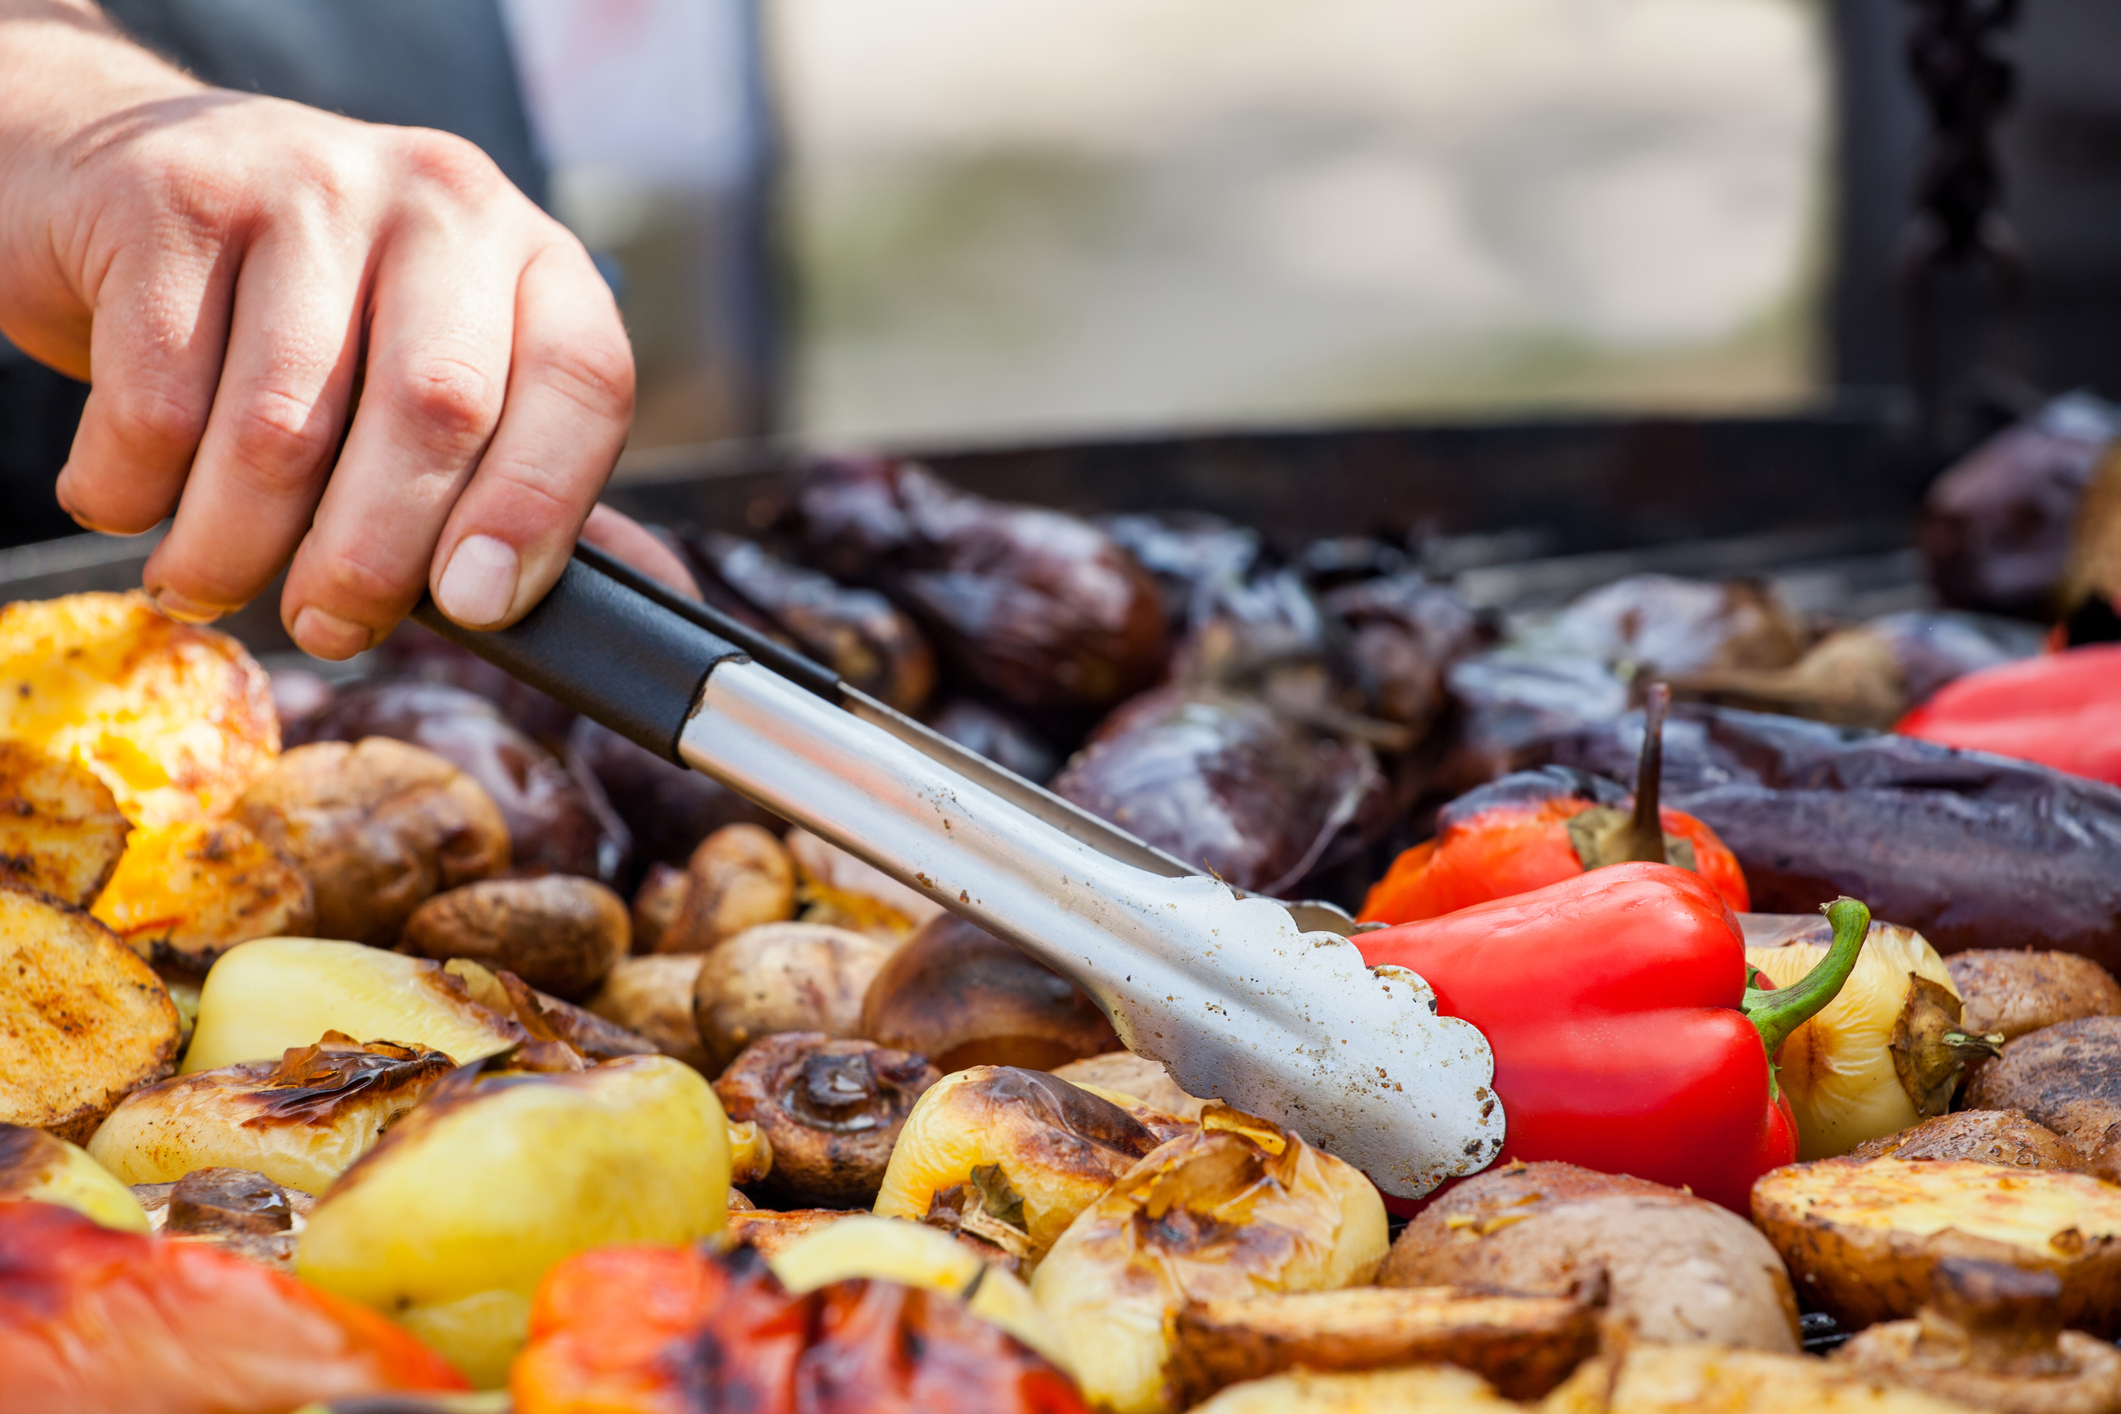 Tongs being used with lots of different vegetables on a grill (Thinkstock/PA)